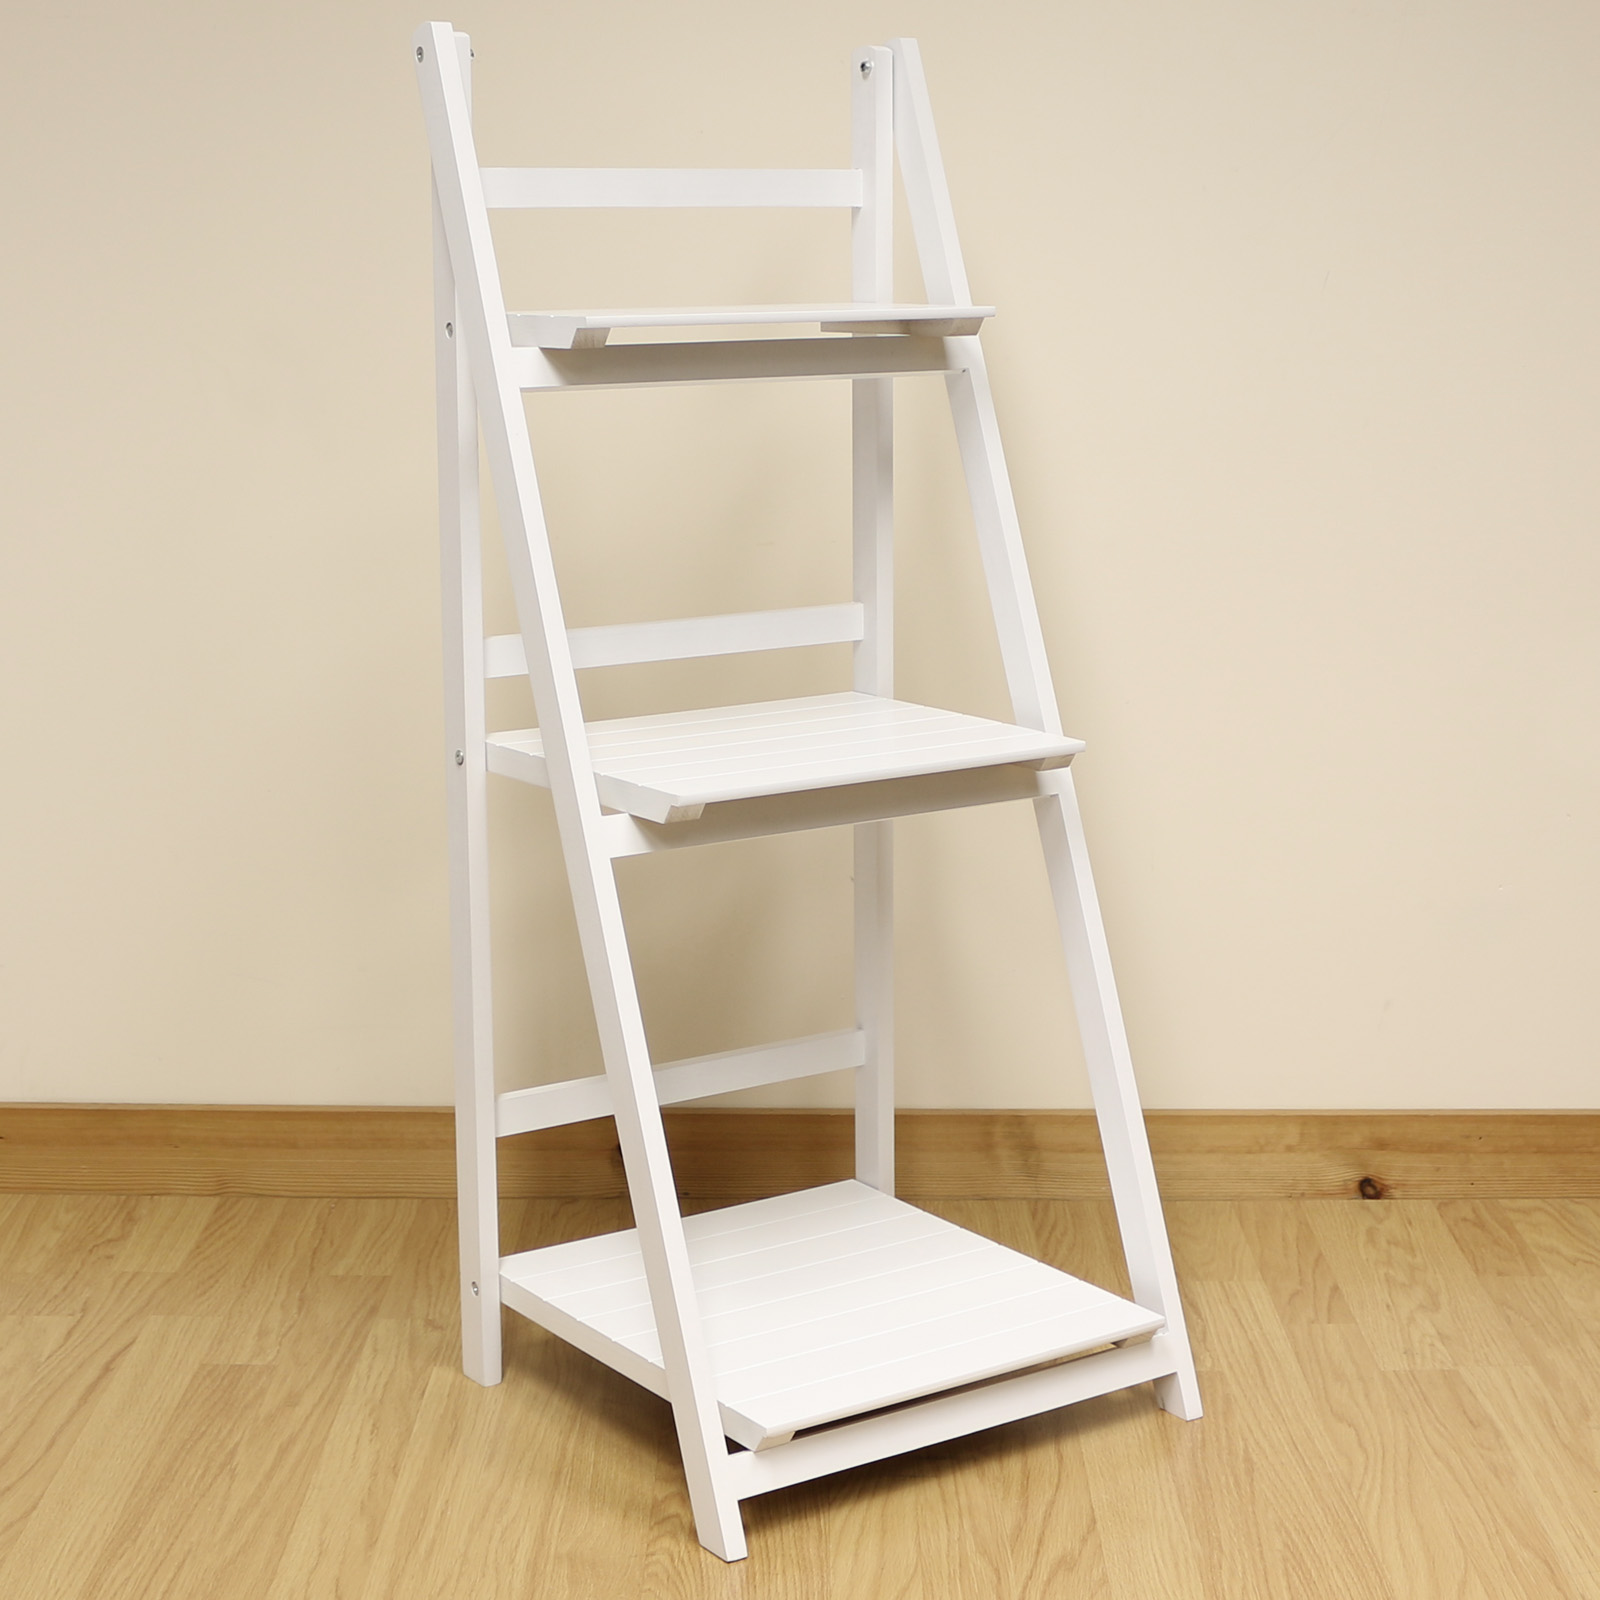 3 Tier White Ladder Shelf Display Unit Free Standing